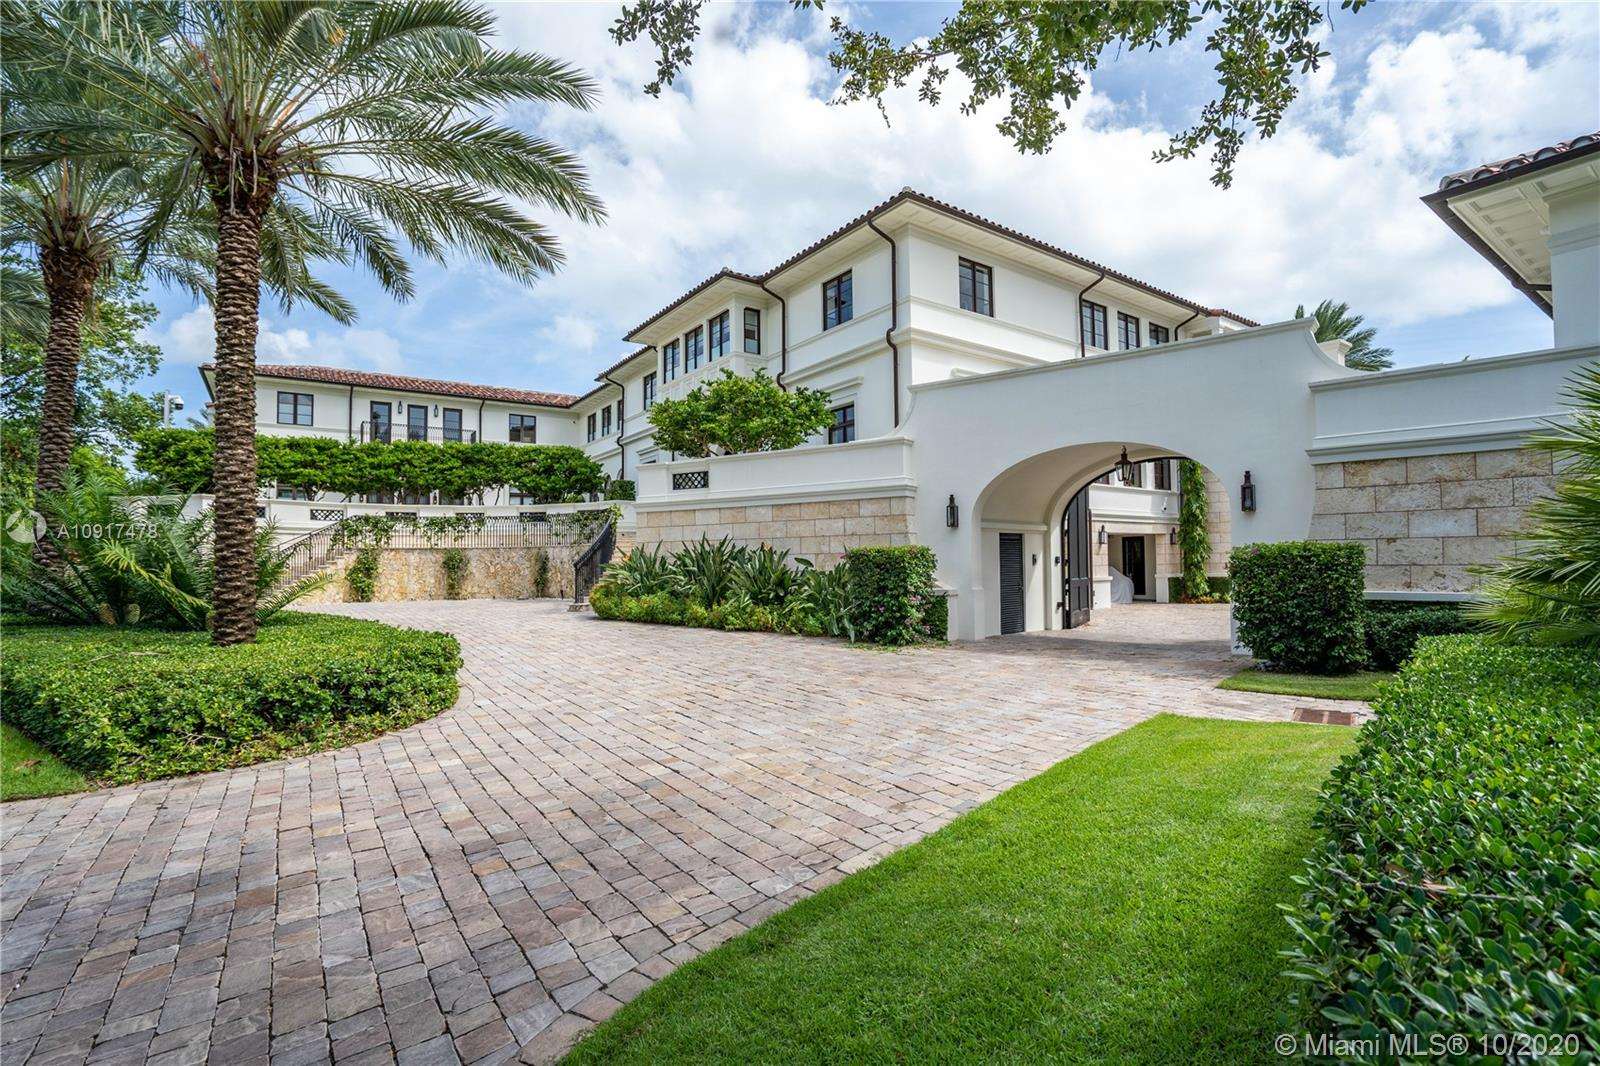 300 Costanera rd- coral-gables-fl-33143-a10917478-Pic05